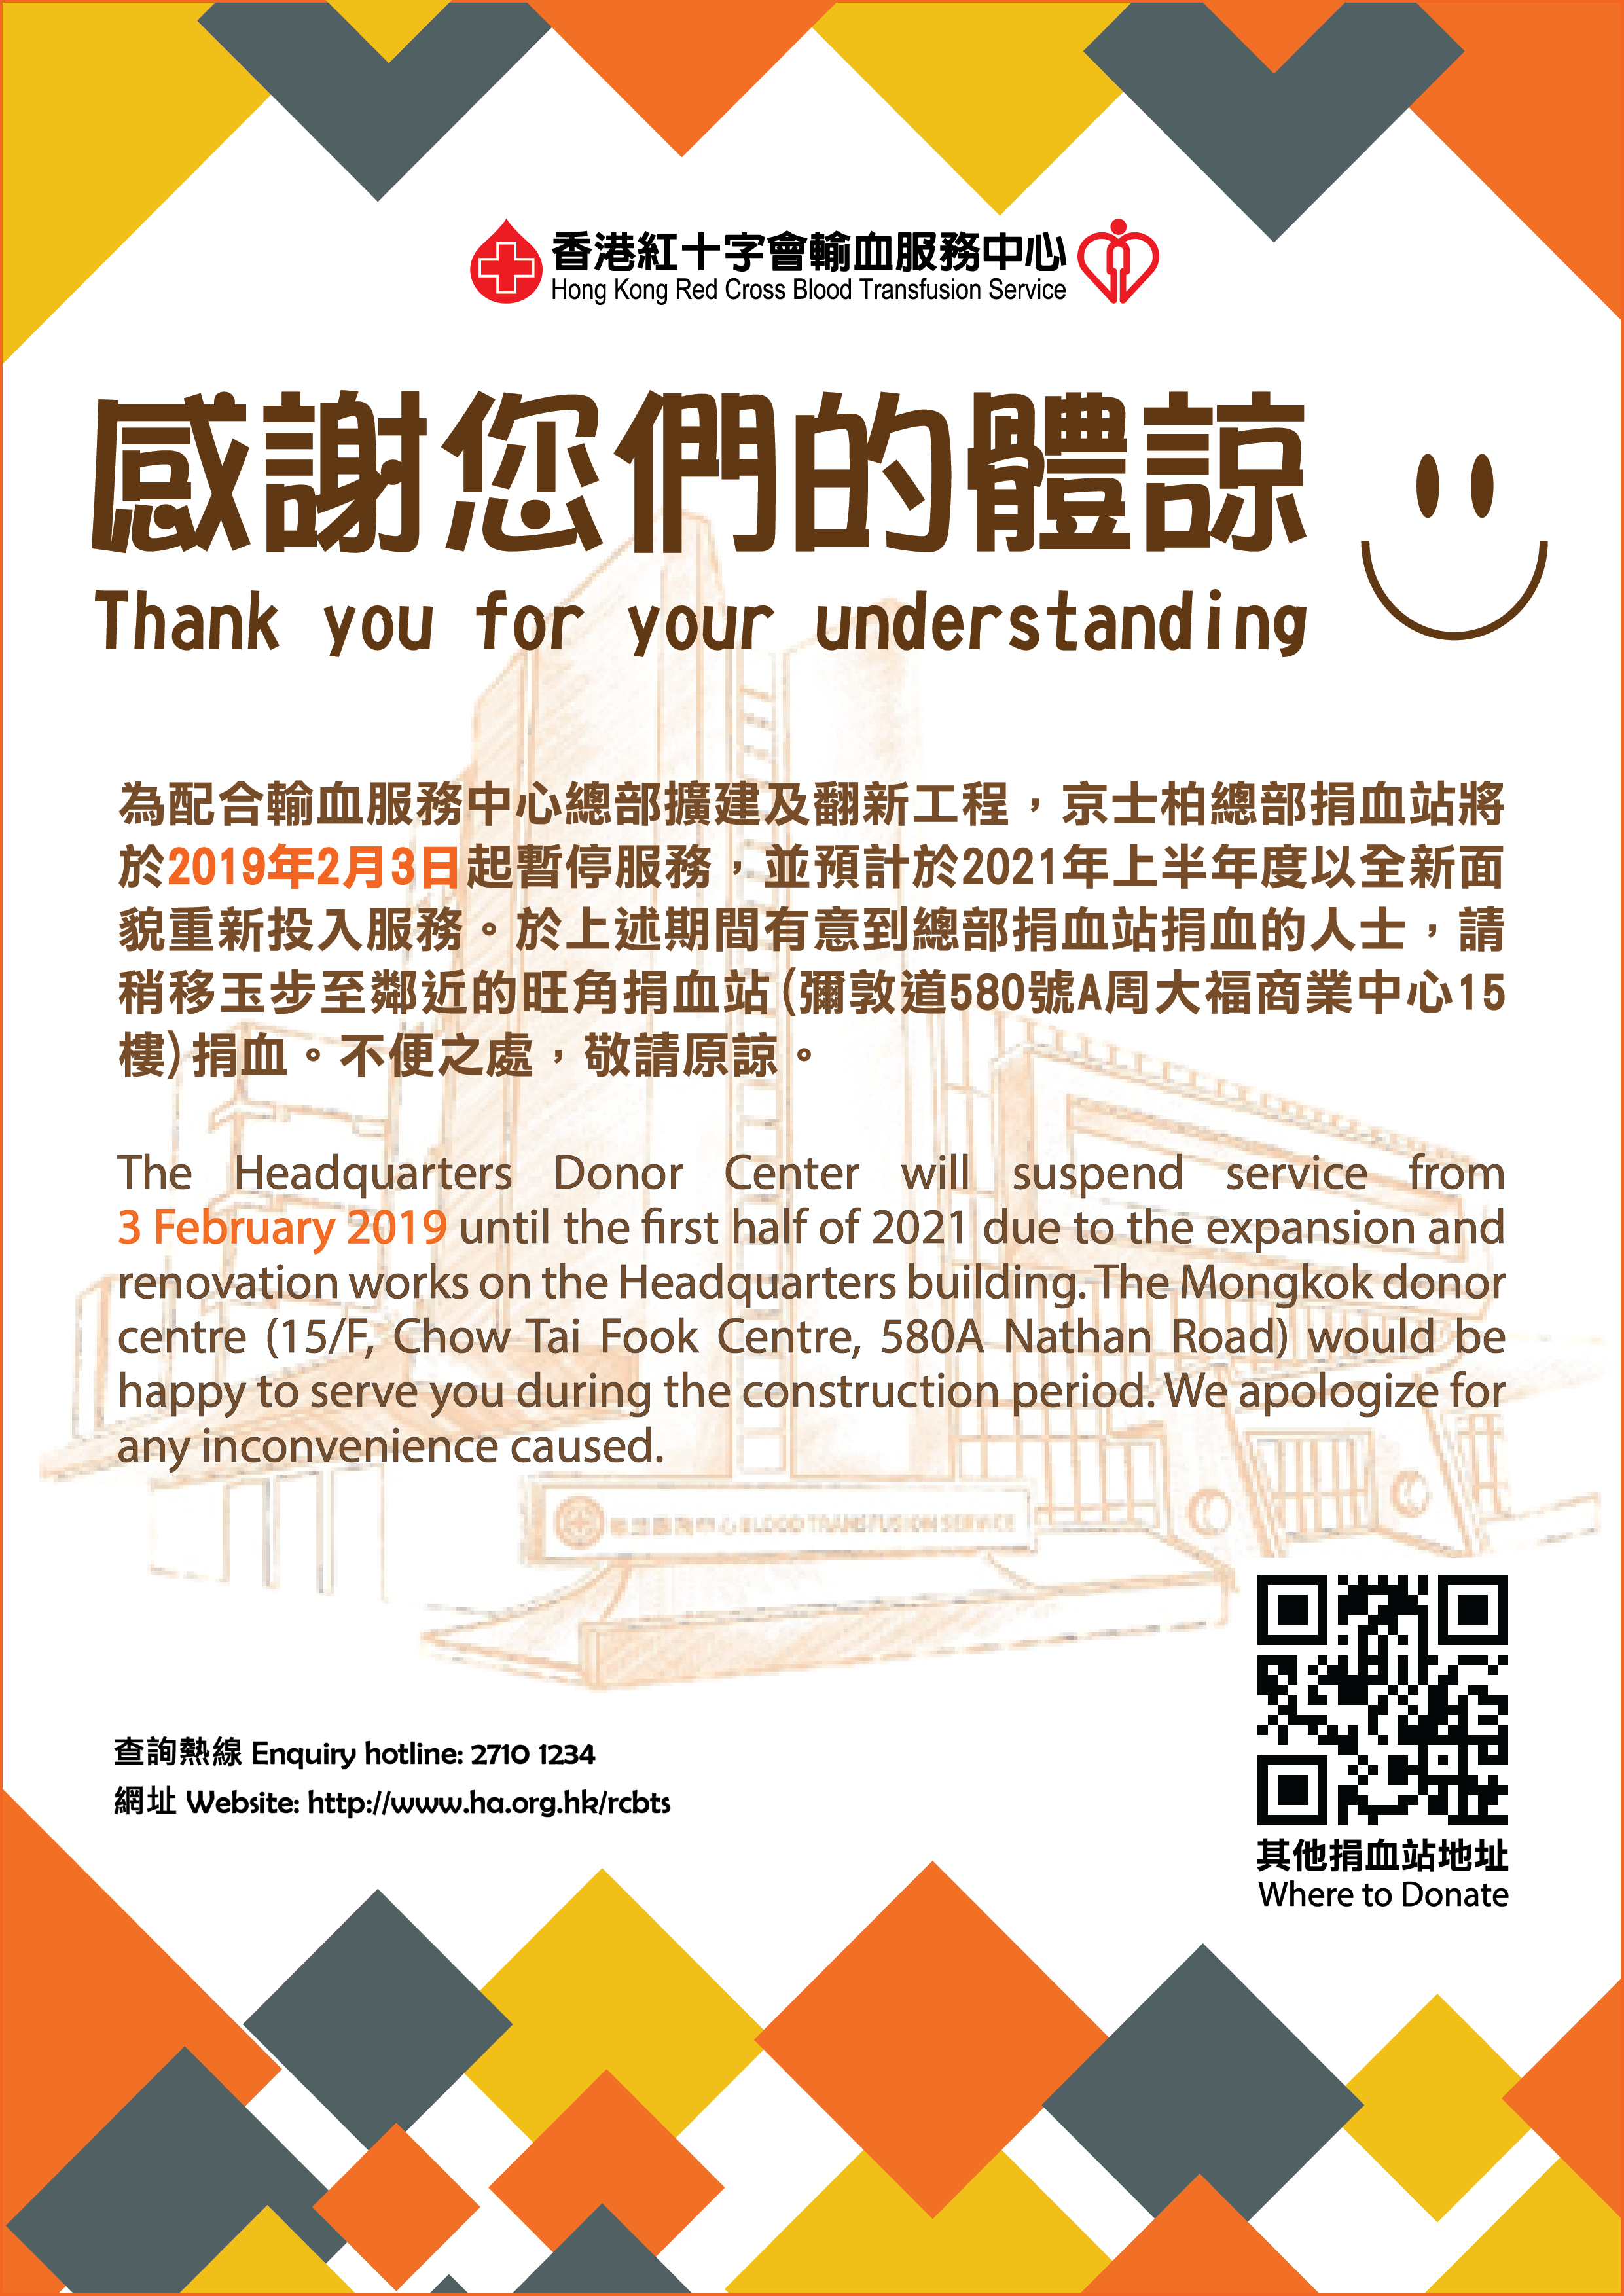 Image: The Headquarters Donor Centre will suspend service from 3 February 2019 until the first half of 2021 due to the expansion and renovation works on the Headquarters building. The Mongkok donor centre (15/F, Chow Tai Fook Centre, 580A Nathan Road) would be happy to serve you during the construction period. We apologize for any inconvenience caused.   Enquiry hotline: 2710 1234